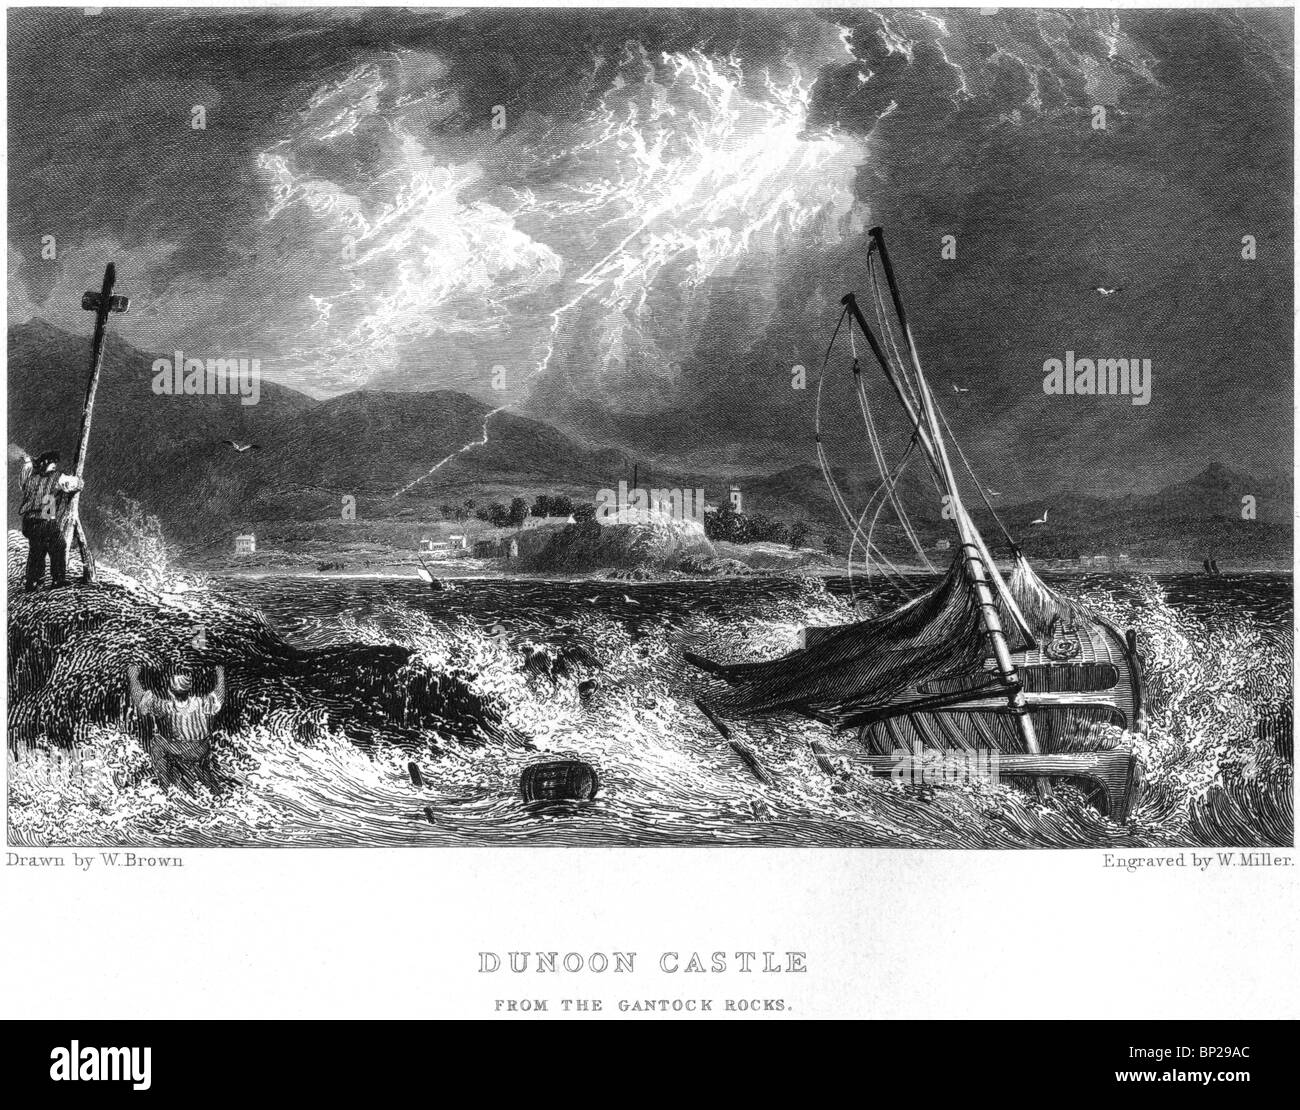 An engraving of Dunoon Castle, Western Scotland - scanned at high resolution from a book published in 1830. - Stock Image